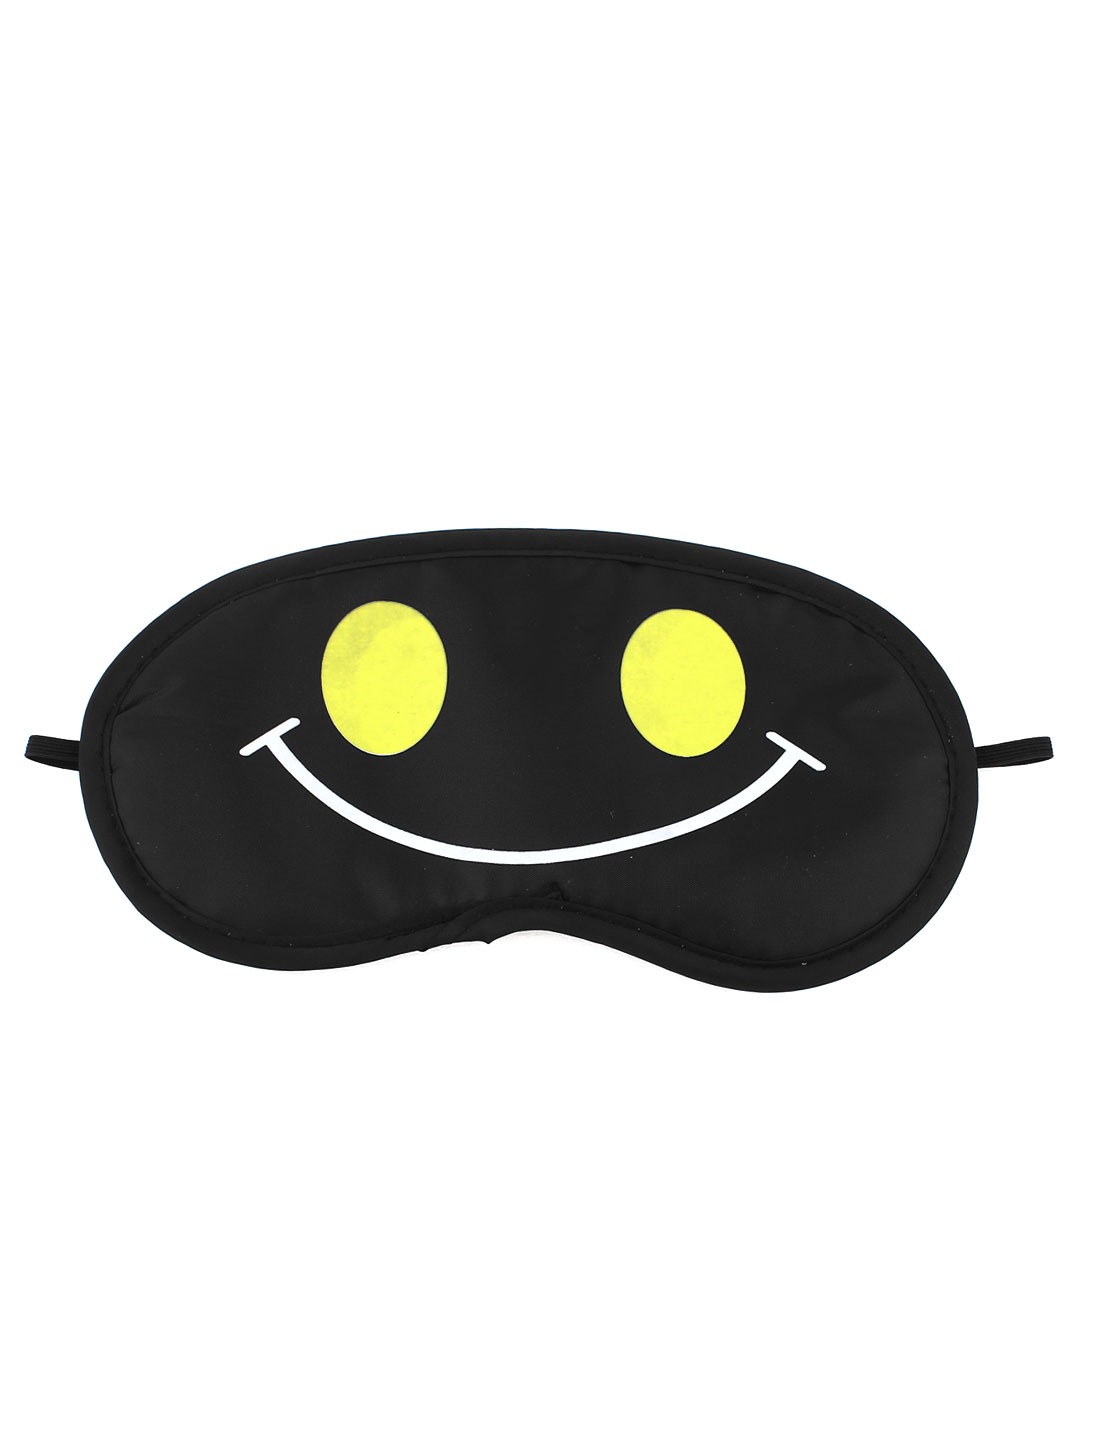 Travel Sleep Blindfold Smile Face Pattern Eyepatch Eye Mask Black